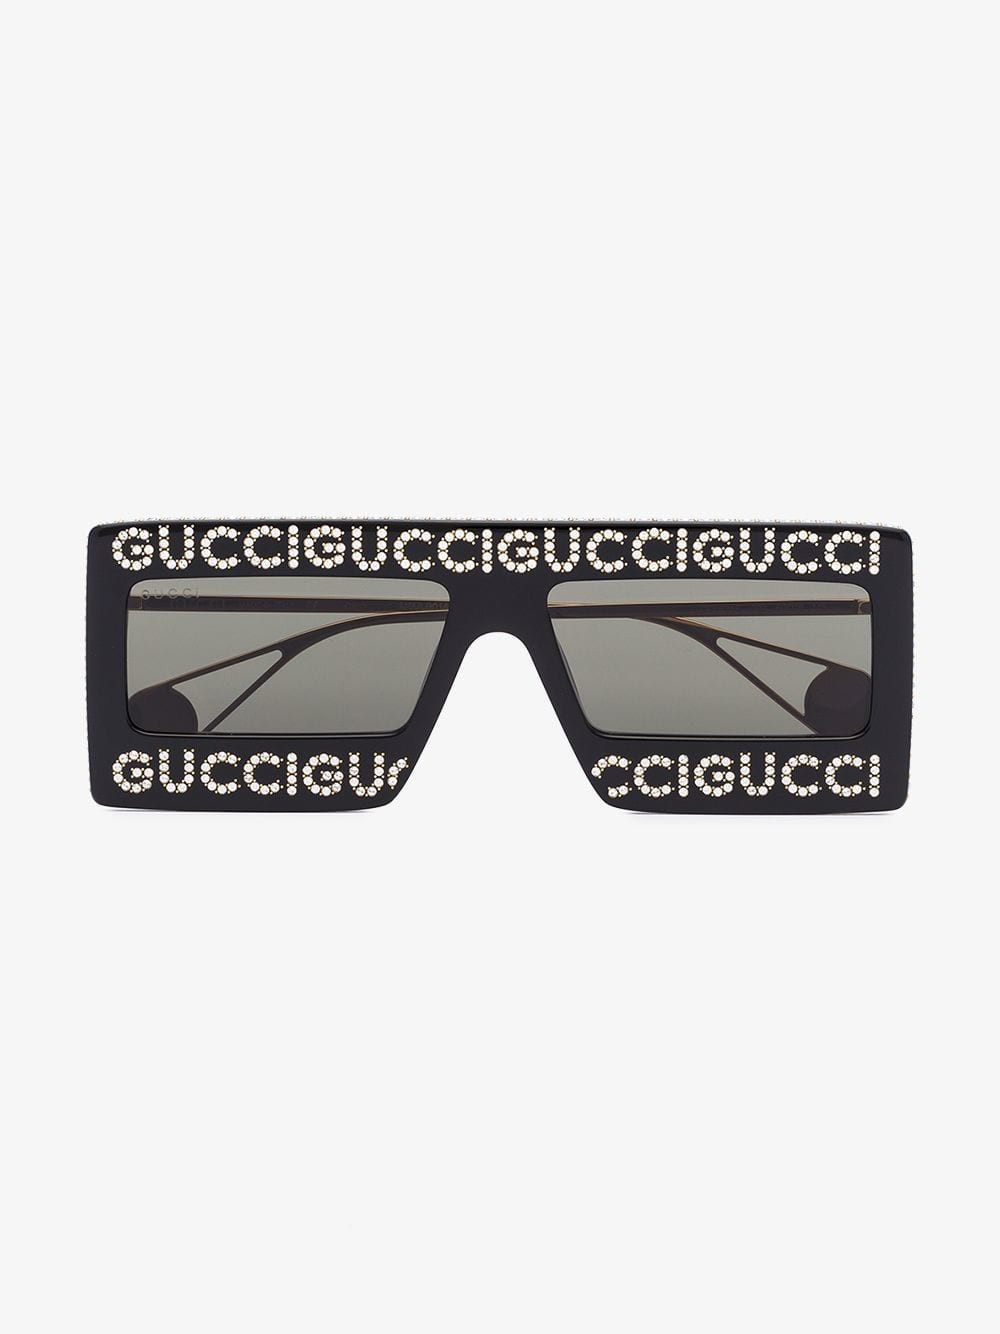 Gucci Eyewear Mask-frame acetate sunglasses in black